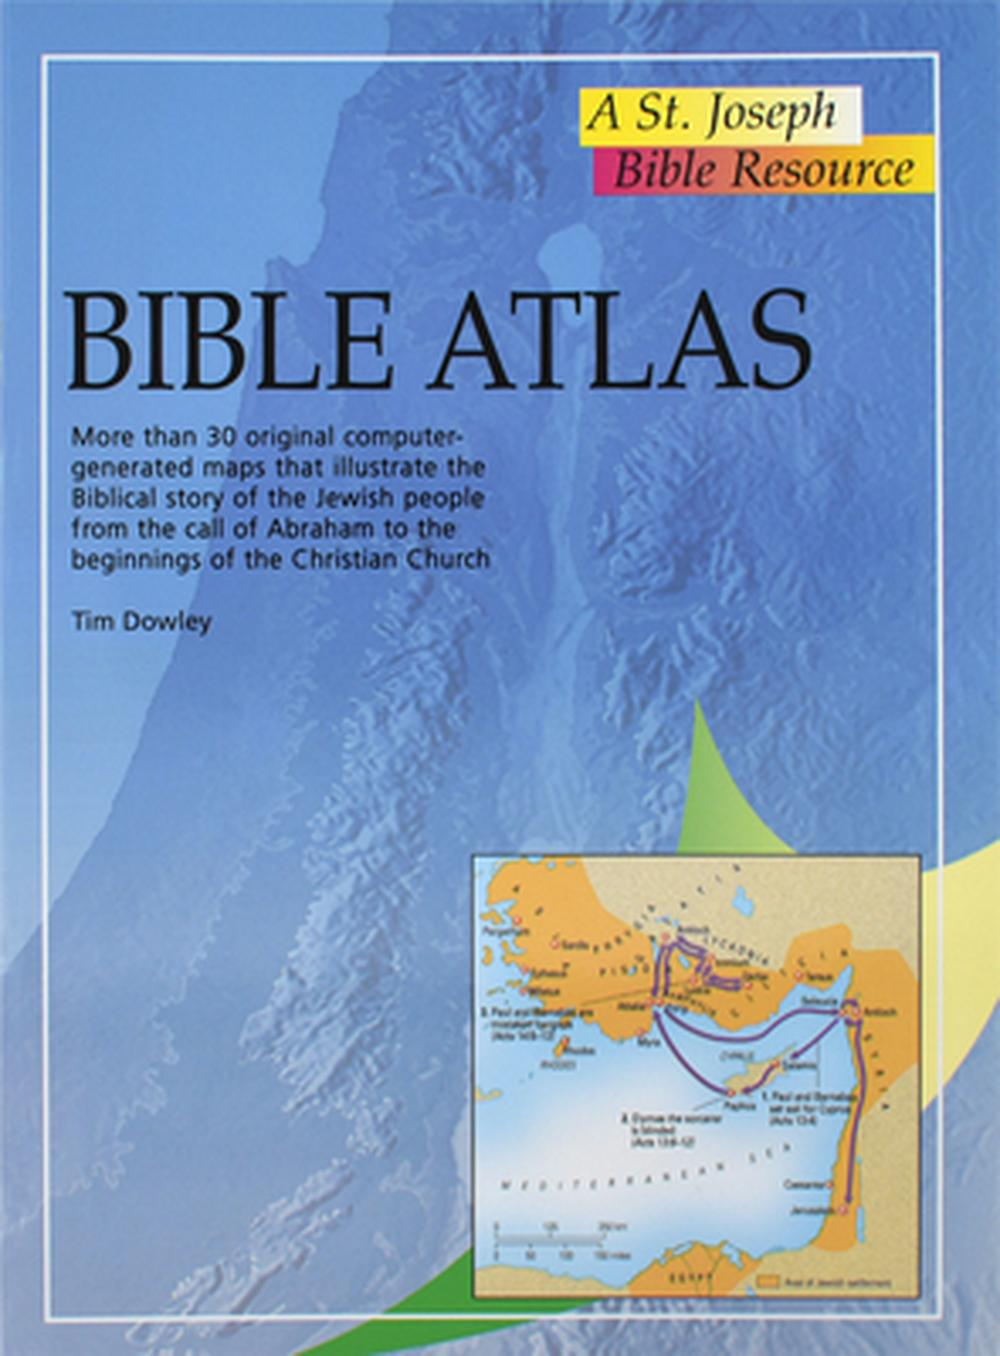 Bible Atlas by Tim Dowley, ISBN: 9780899426549